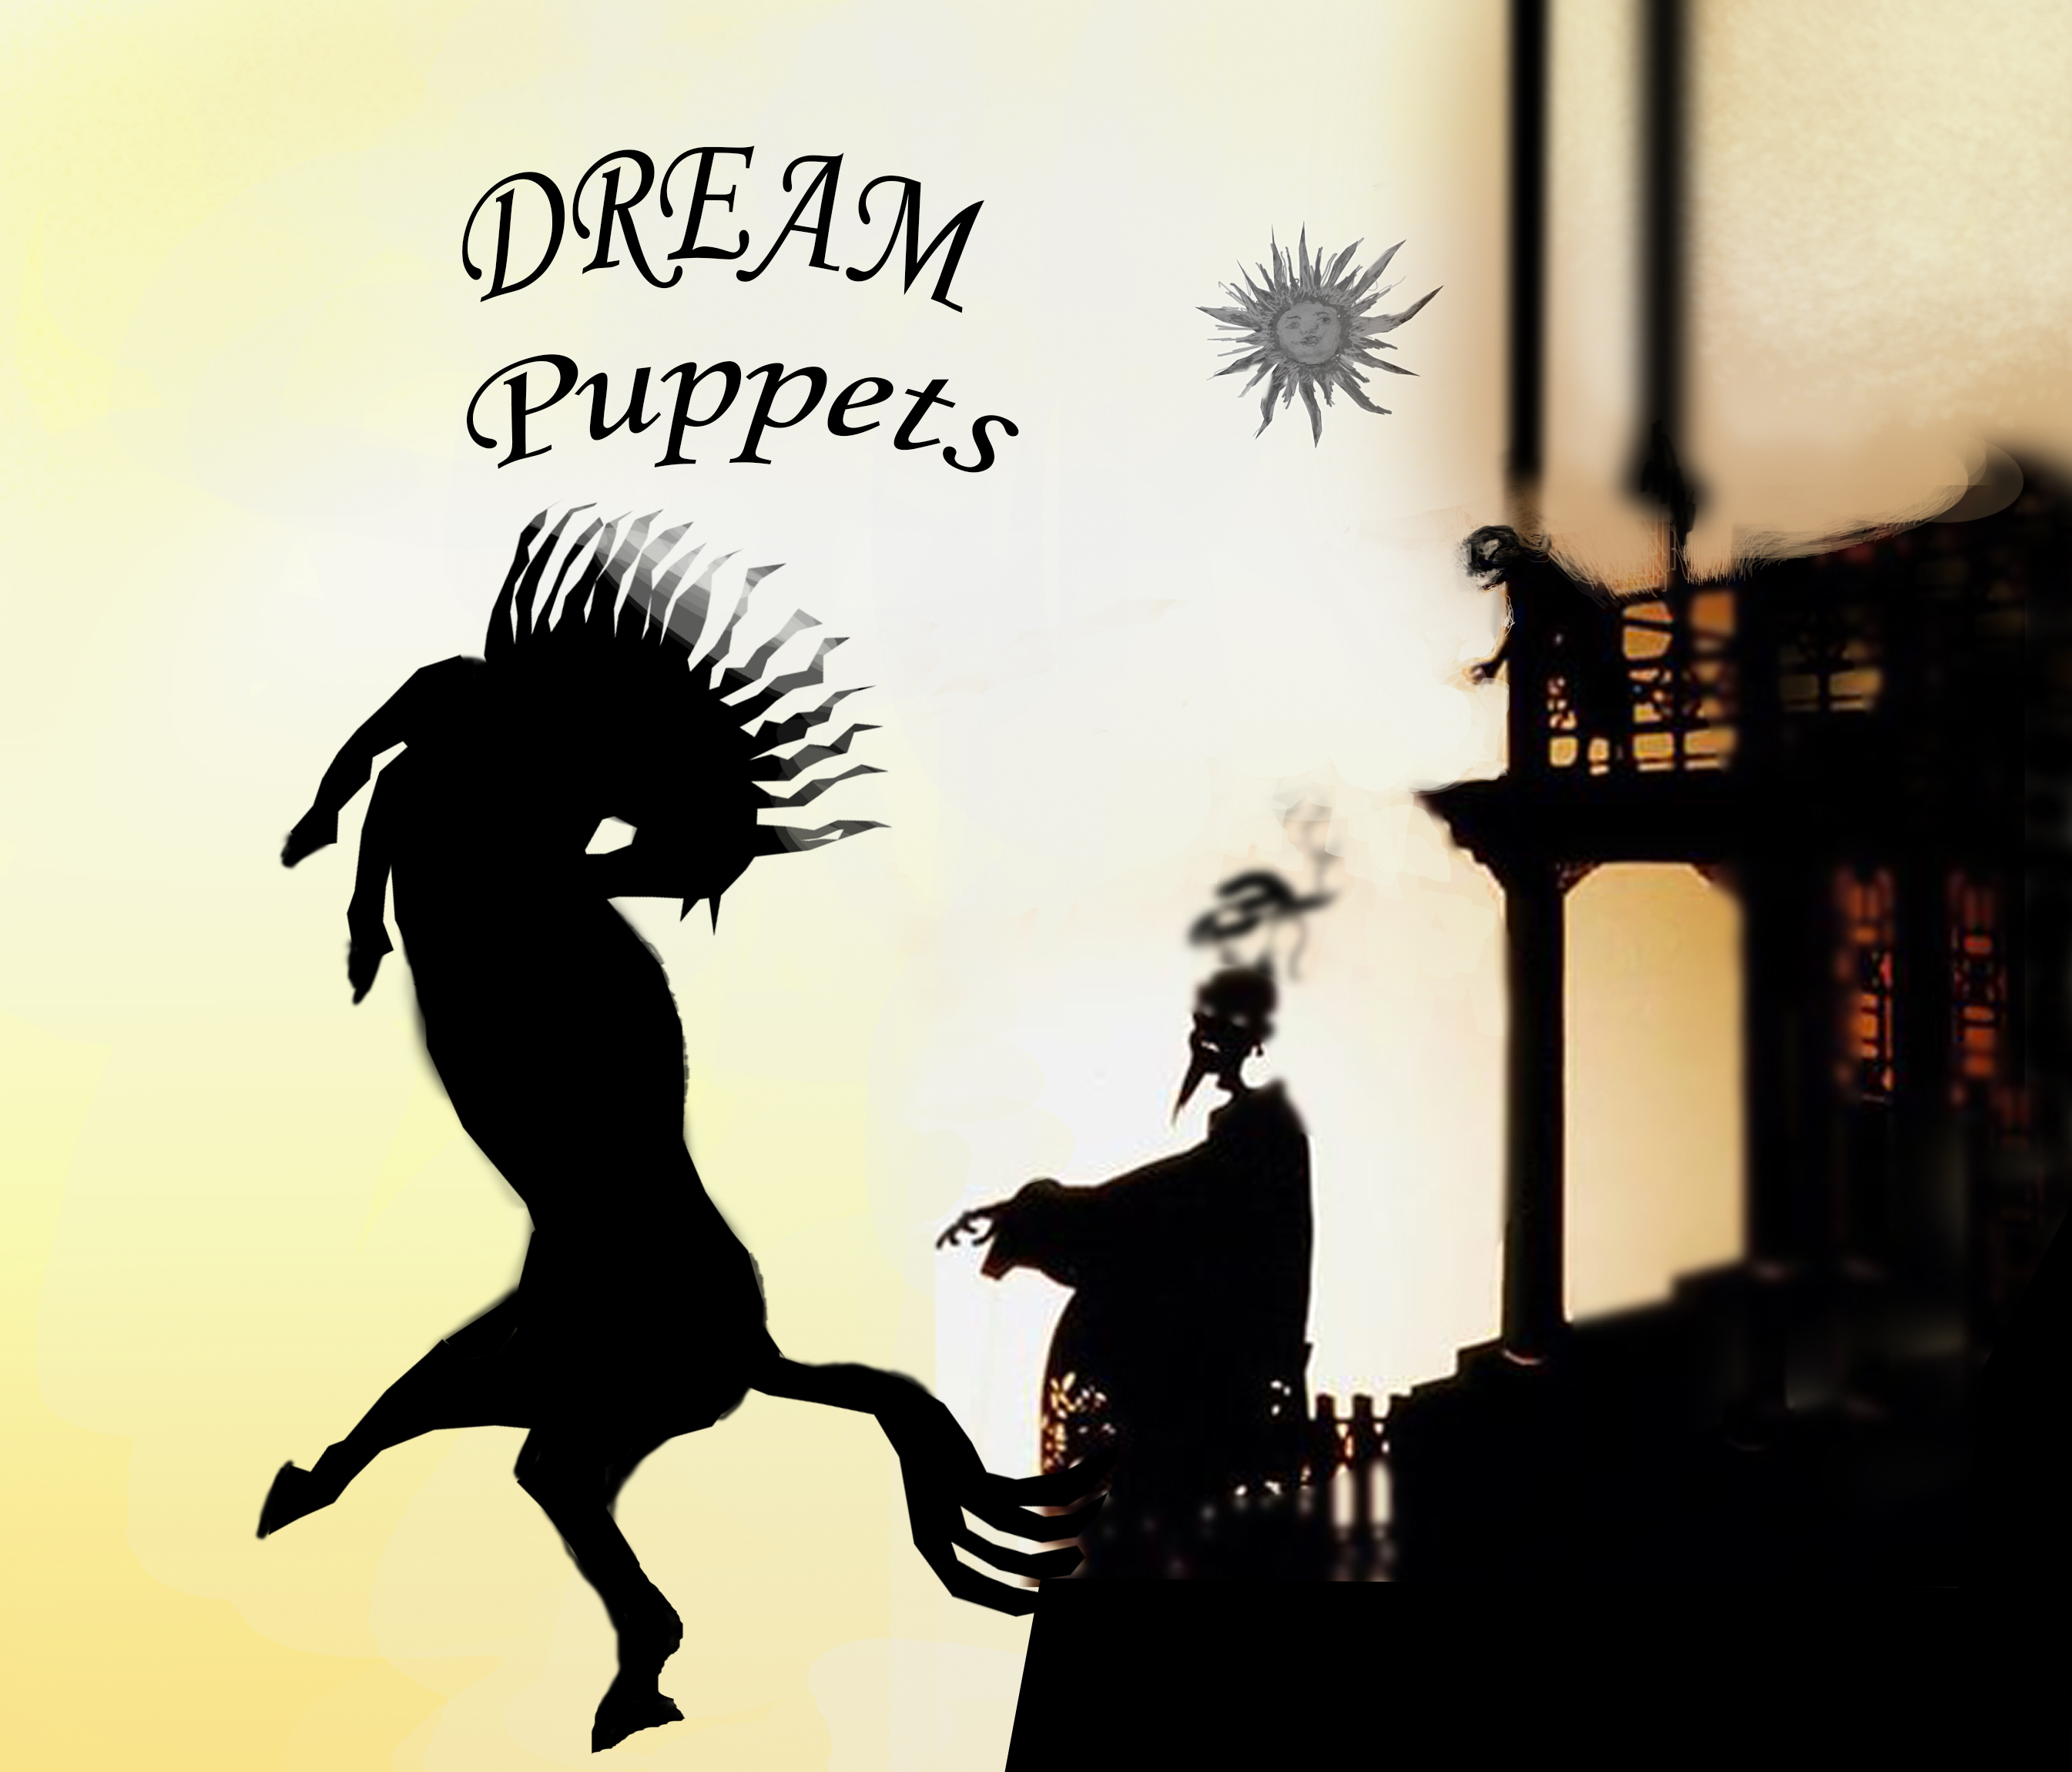 Dream Puppets and Animation